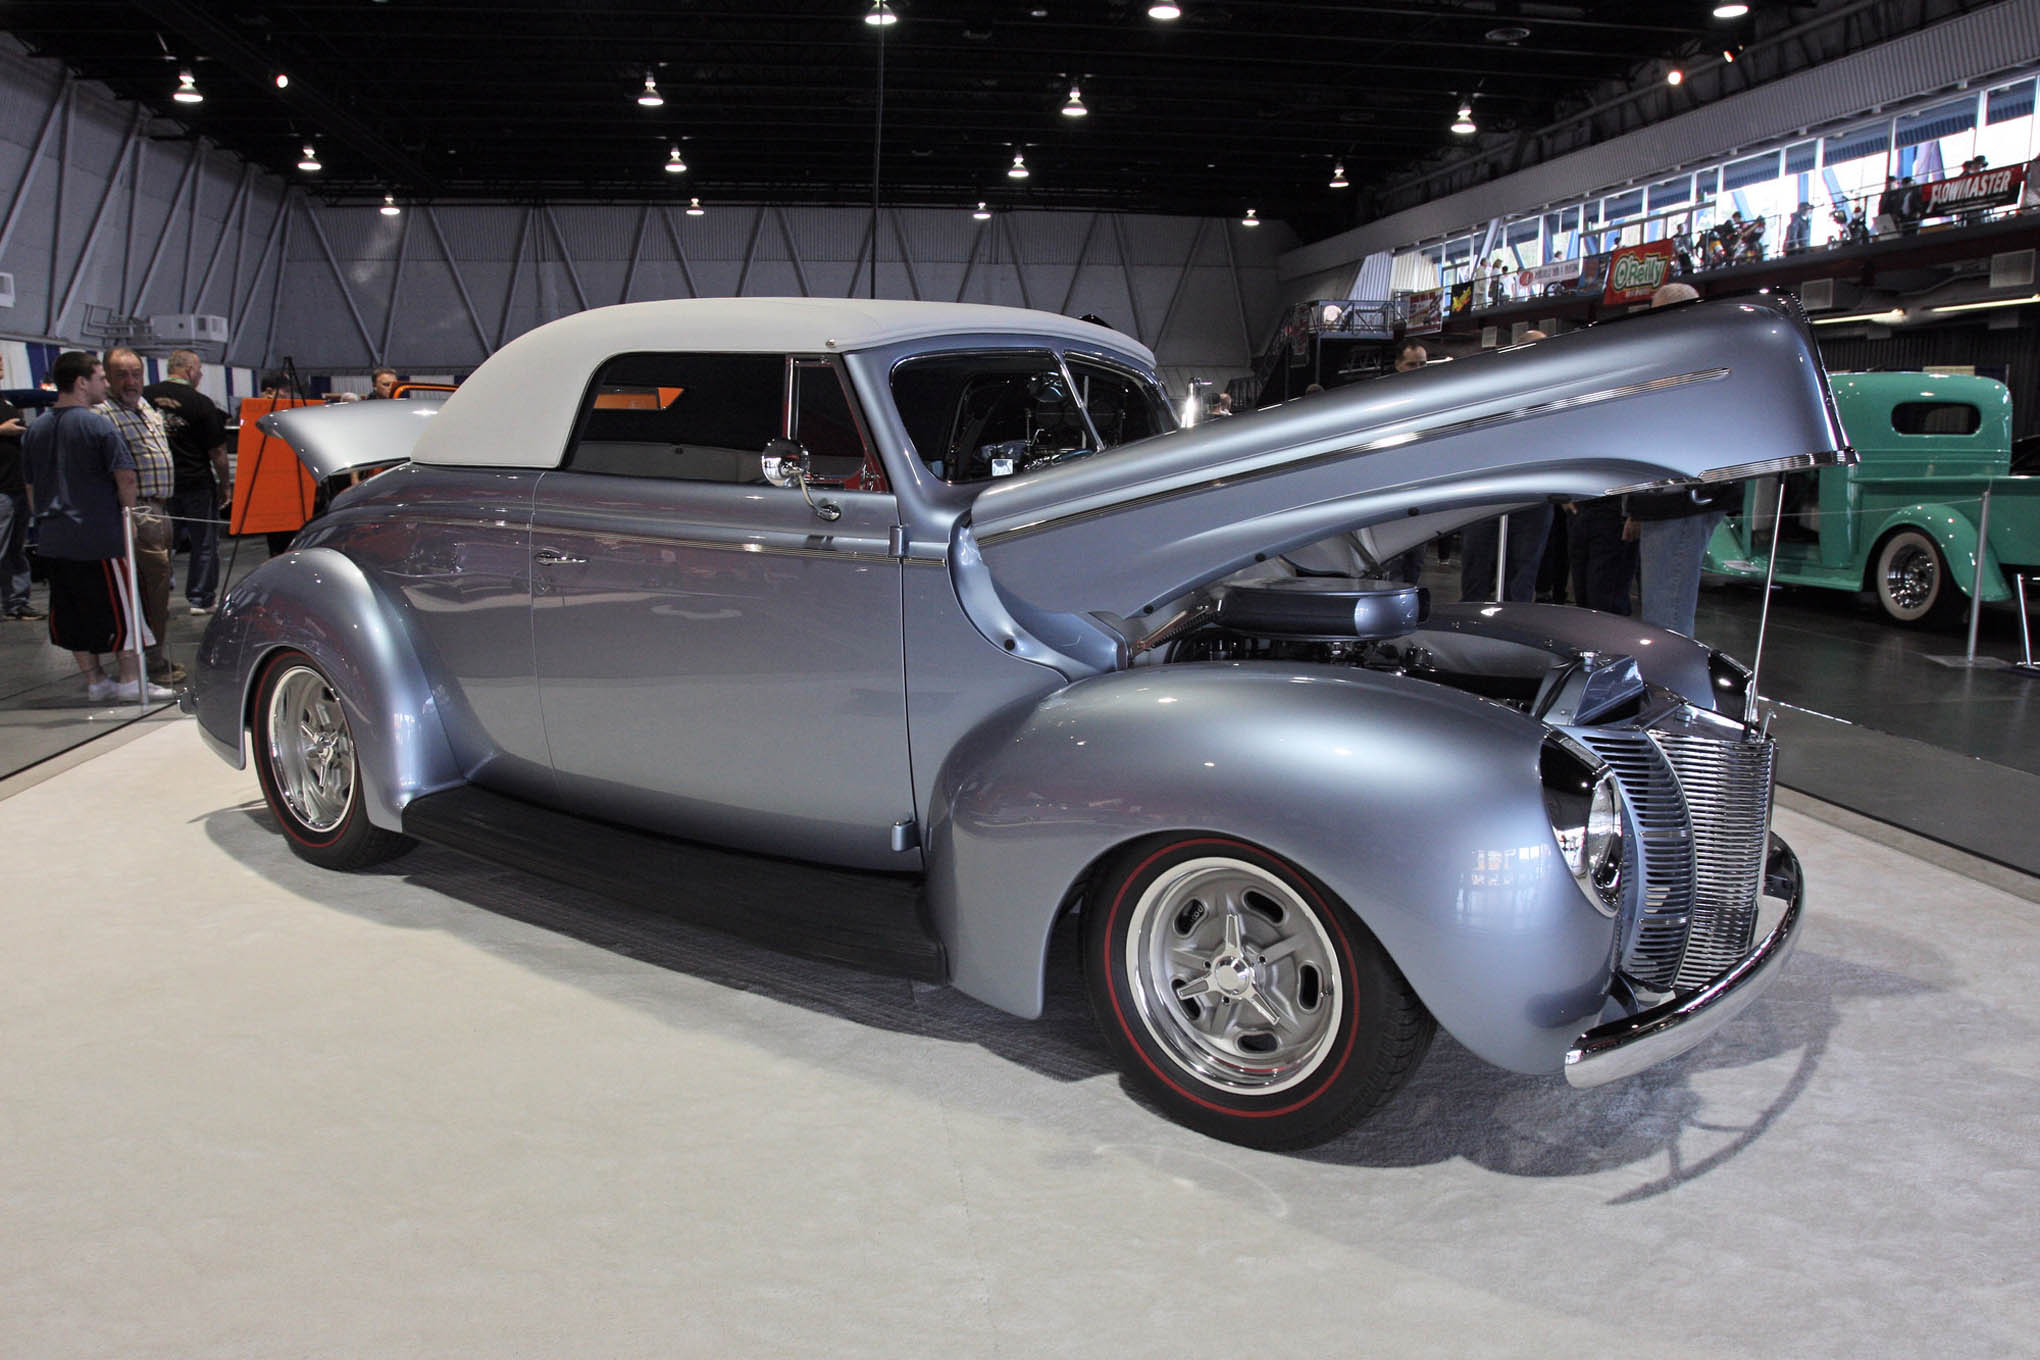 A couple weeks after making an impression at the Grand National Roadster Show, Tony and Paula Jurado's beautiful 1940 Ford convertible (built by South City Rod & Custom) was back home in Northern California, winning the Lee's Vintage Car Shop Restoration Award in Sacramento.